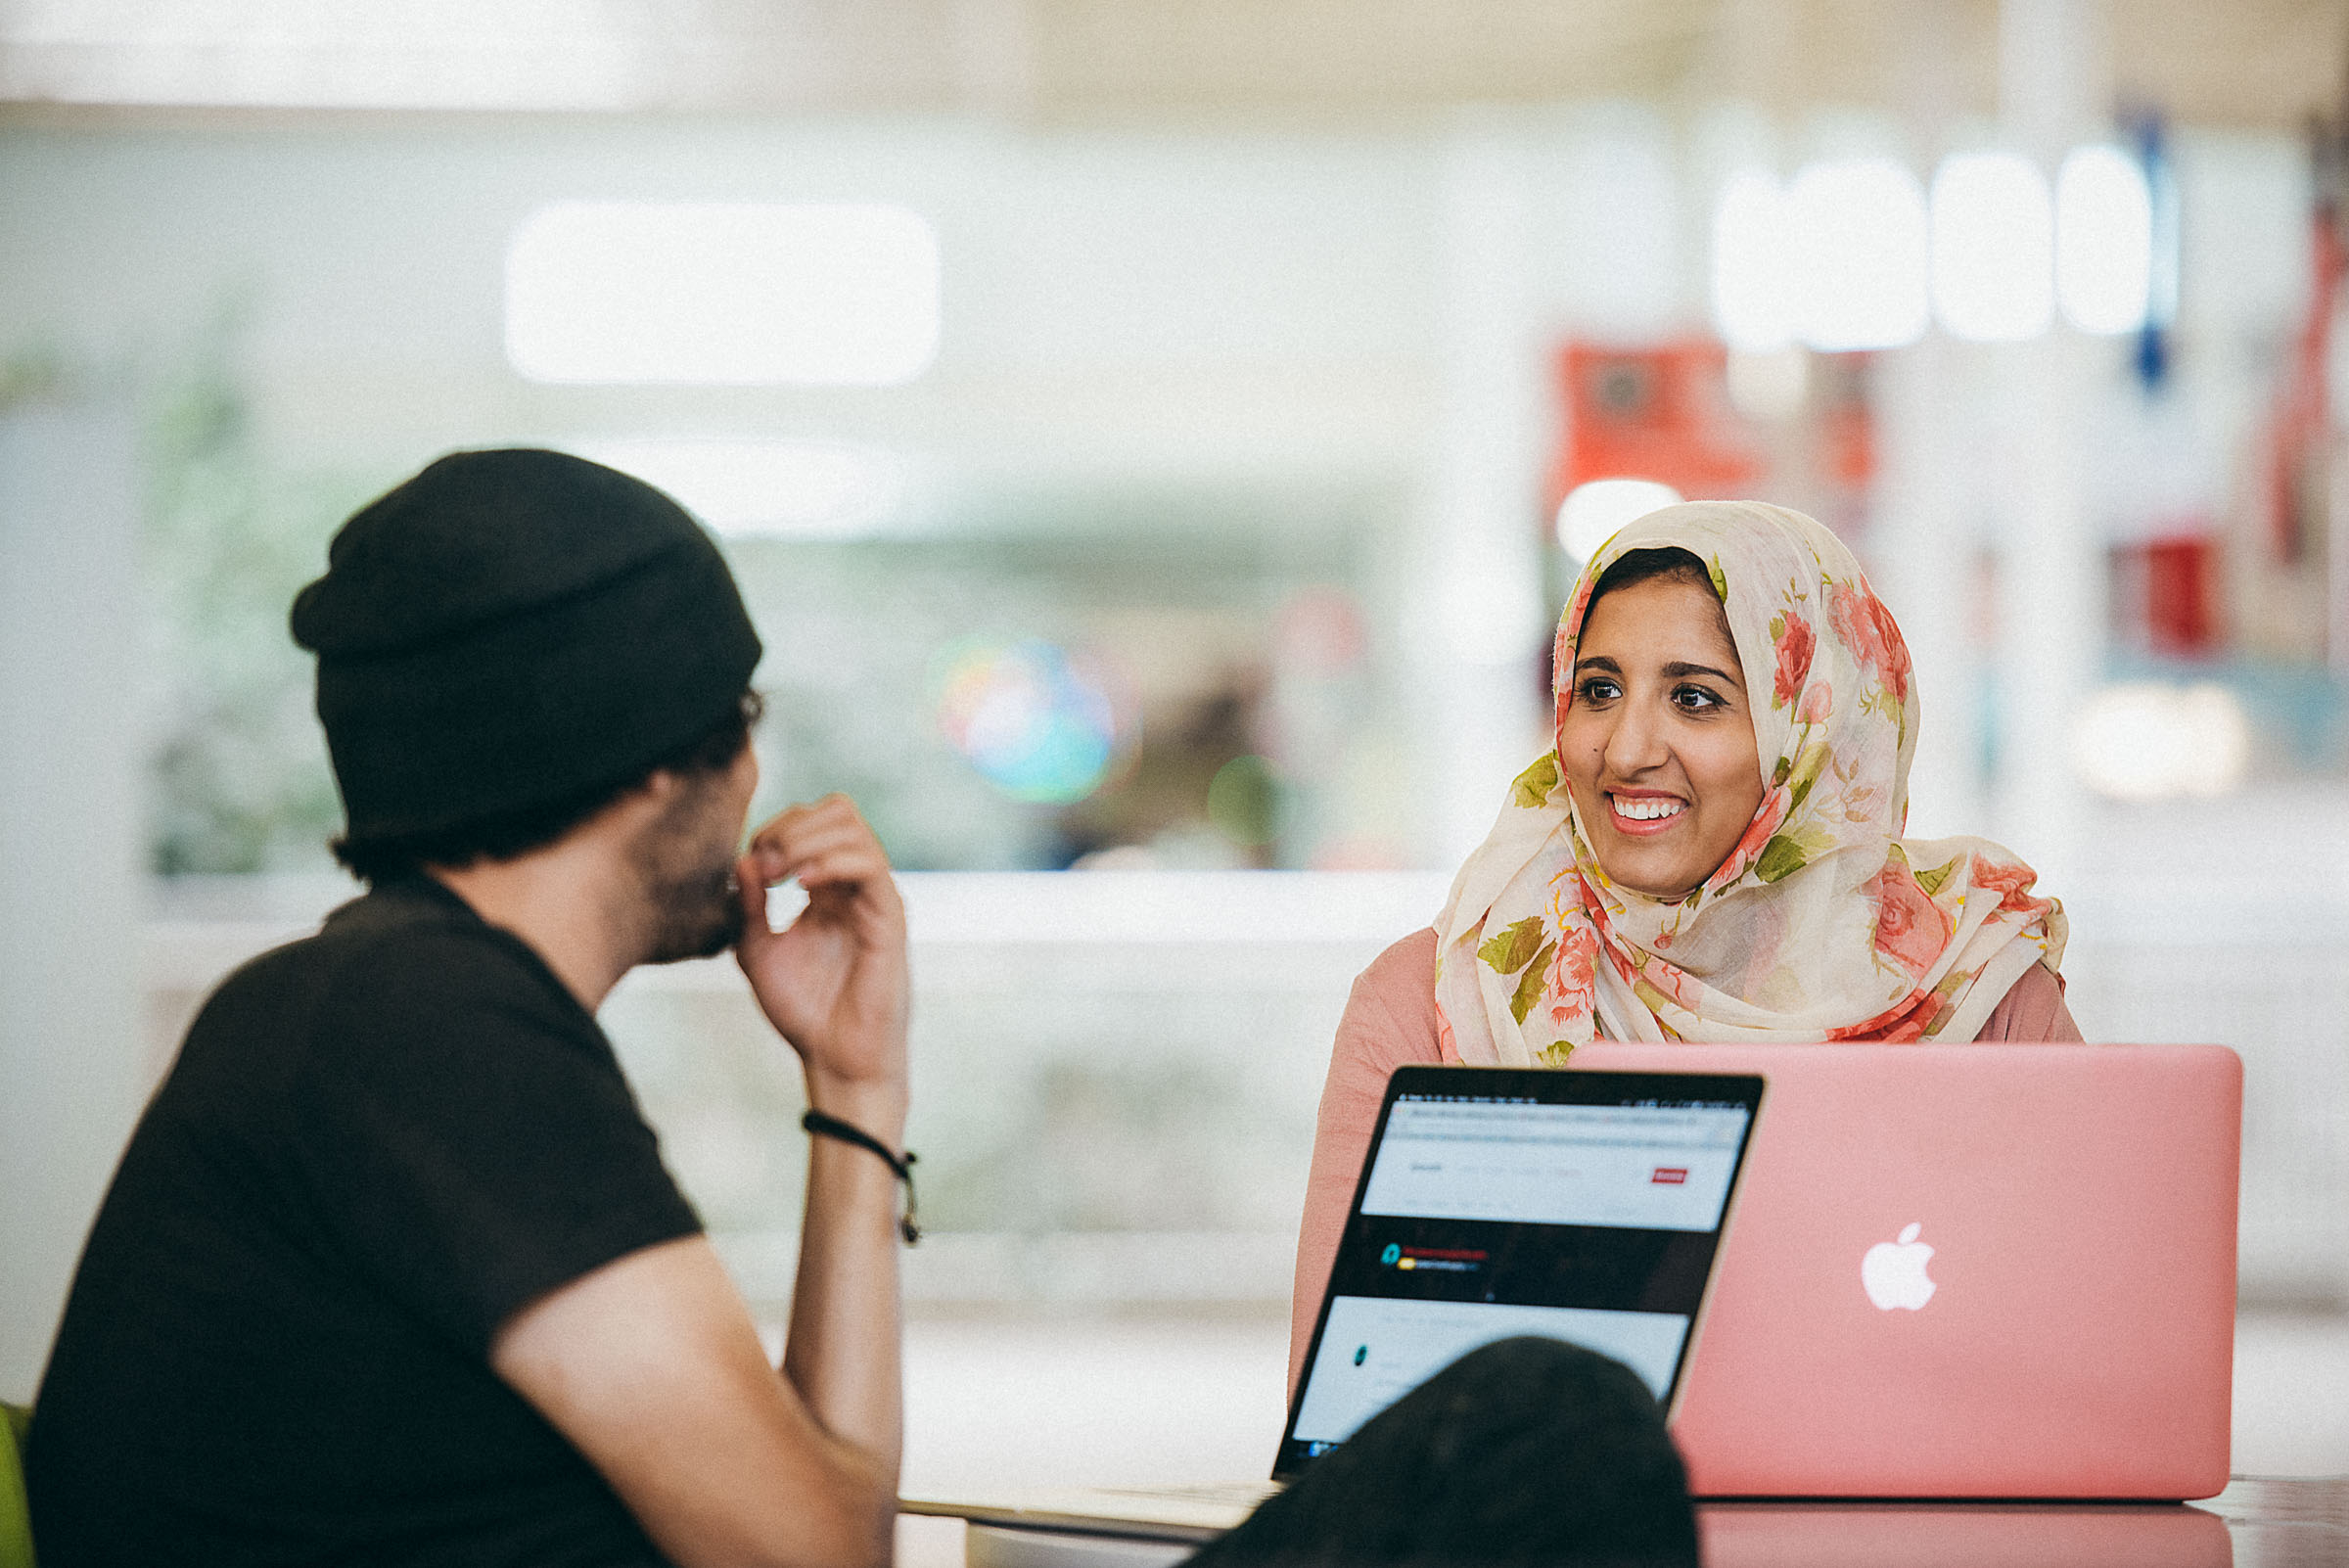 Diversity in tech/lifestyle photography - two colleagues chat at Rackspace San Antonio.